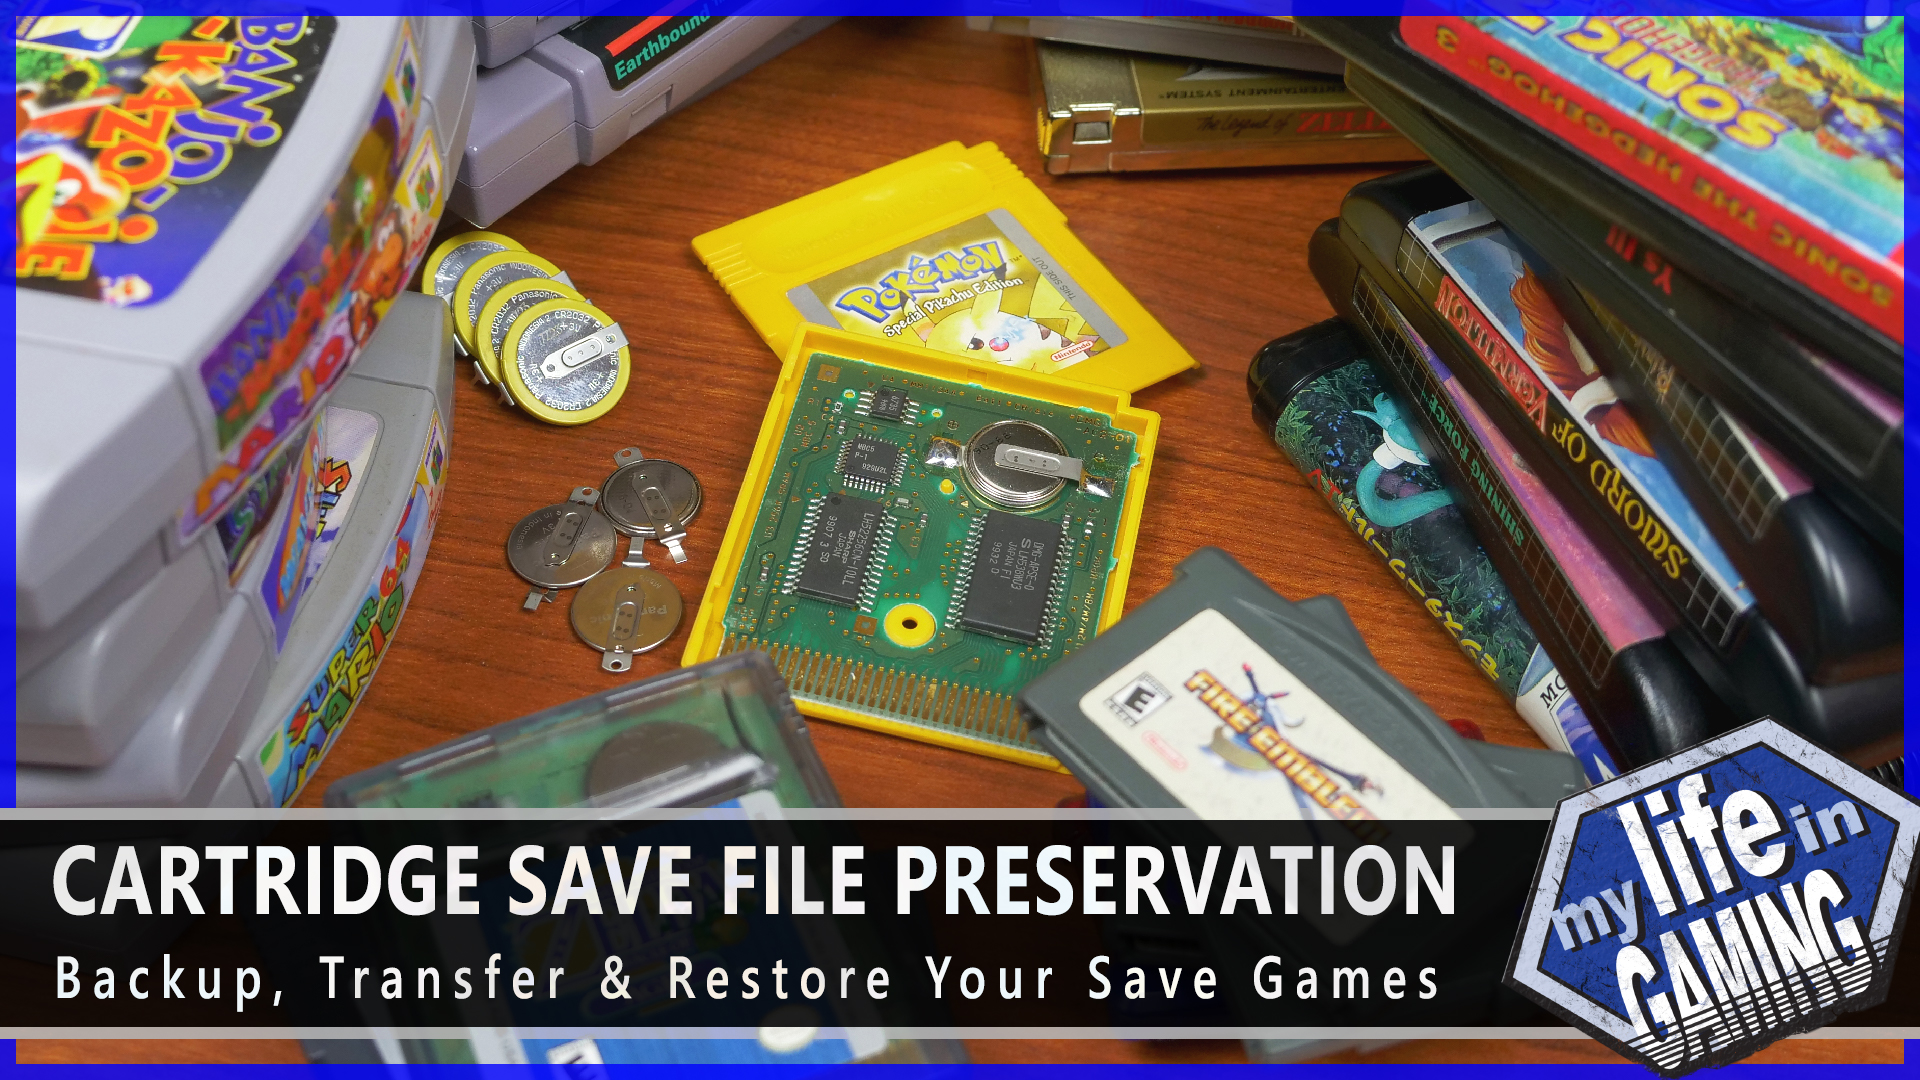 Cartridge Save File Preservation from My Life in Gaming